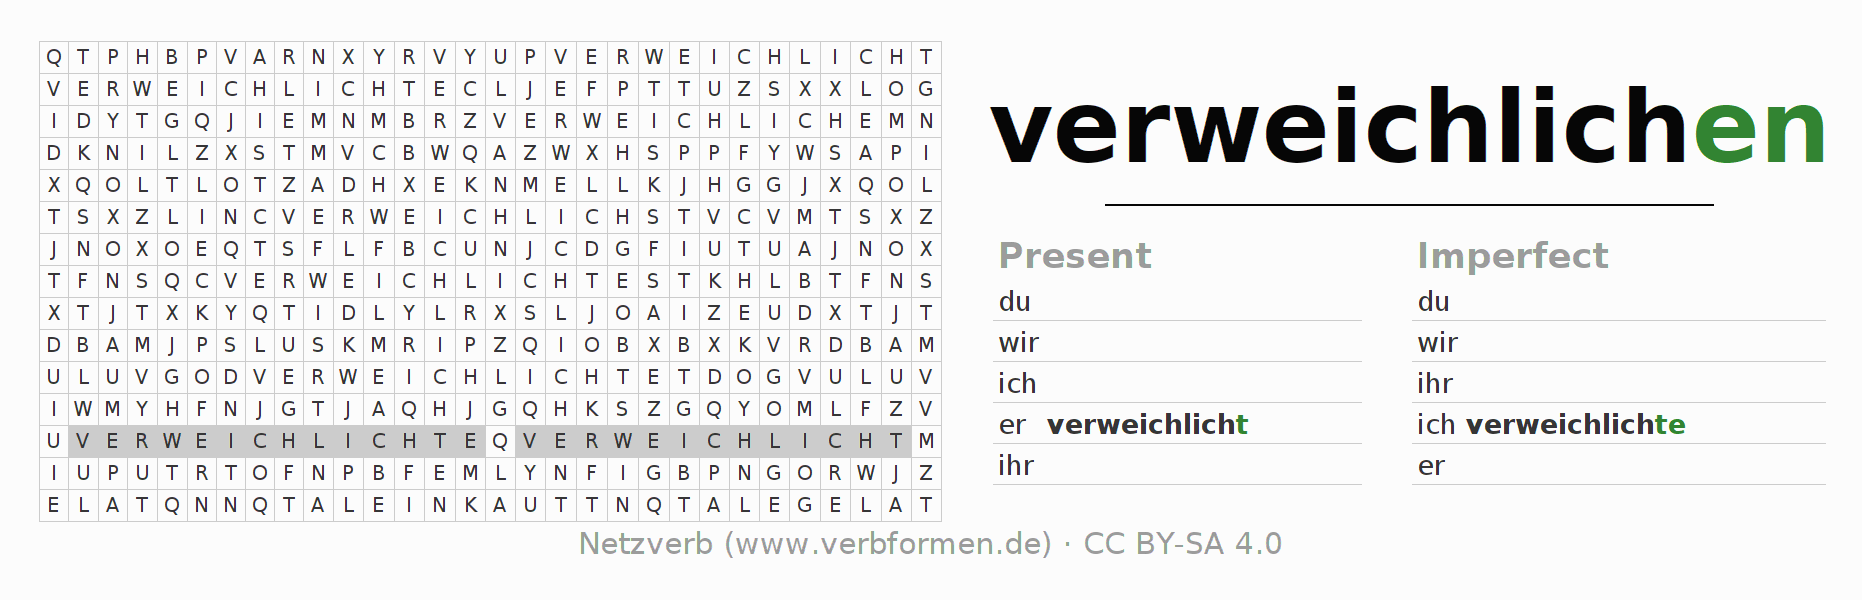 Word search puzzle for the conjugation of the verb verweichlichen (ist)